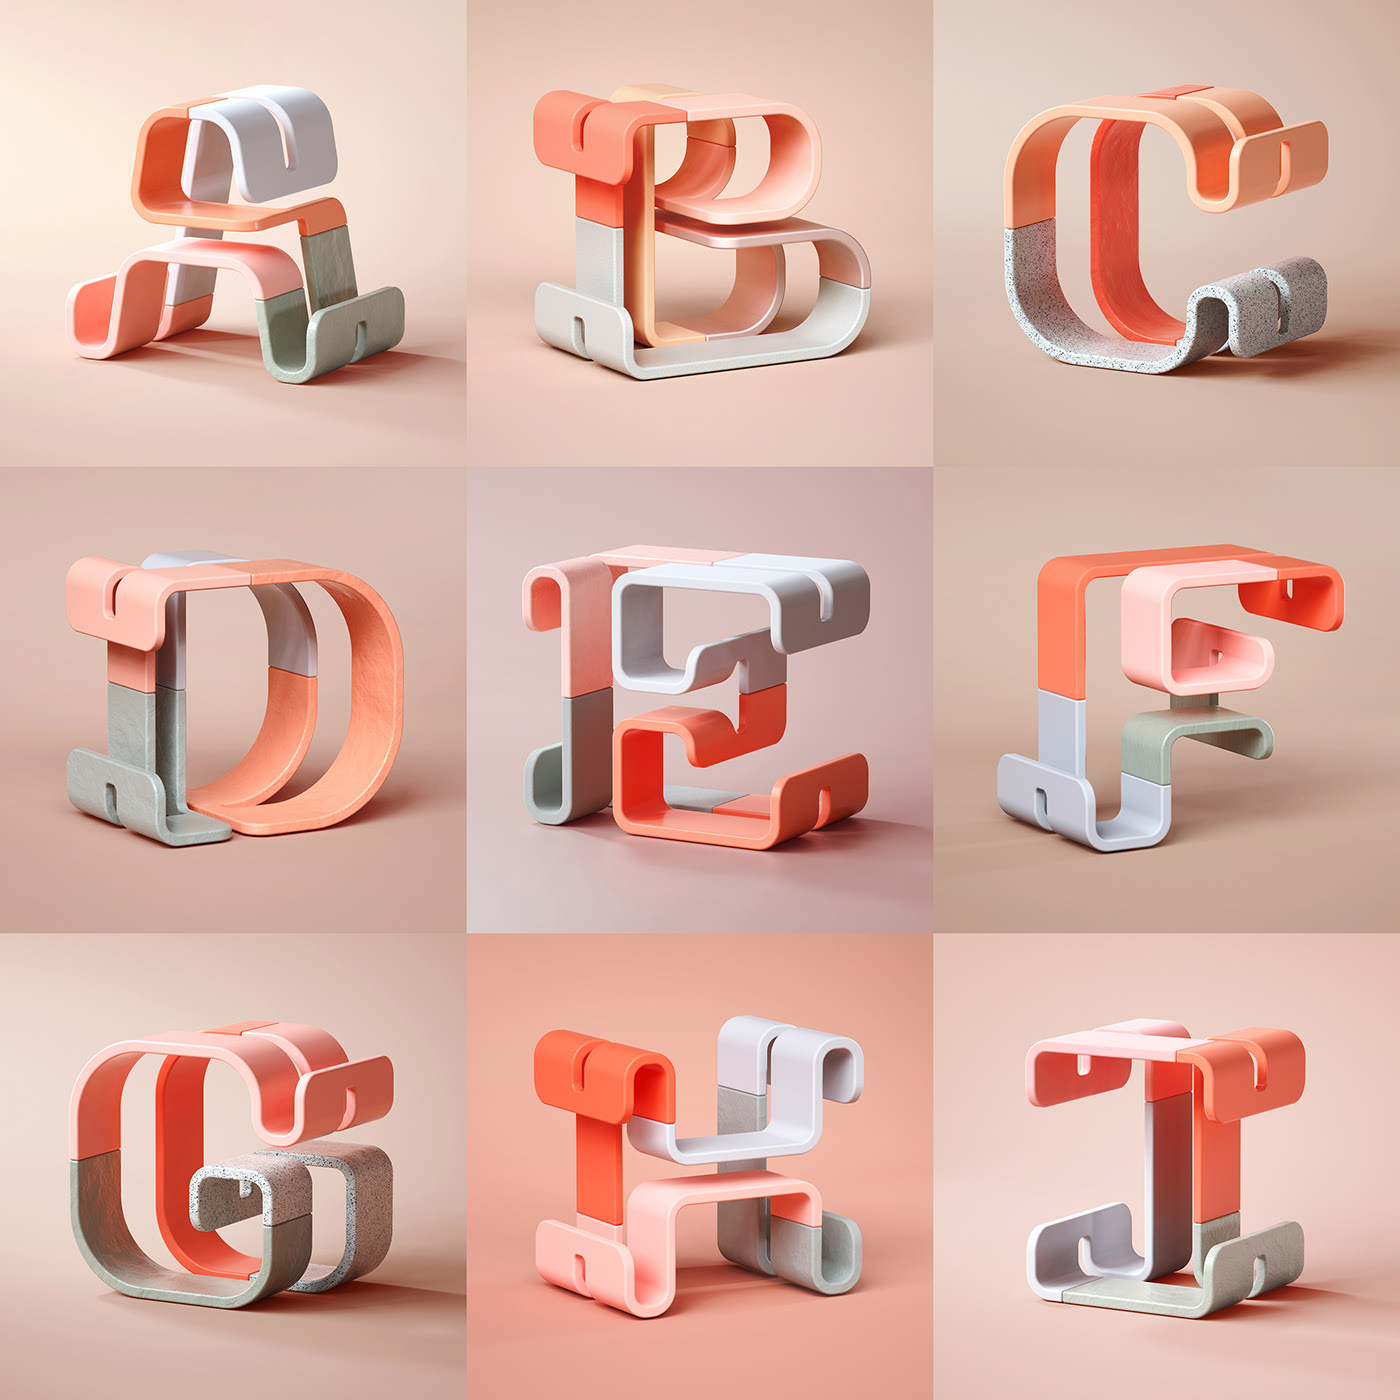 Modish 3D Typography by BÜRO UFHO - 36 Days of Type'19